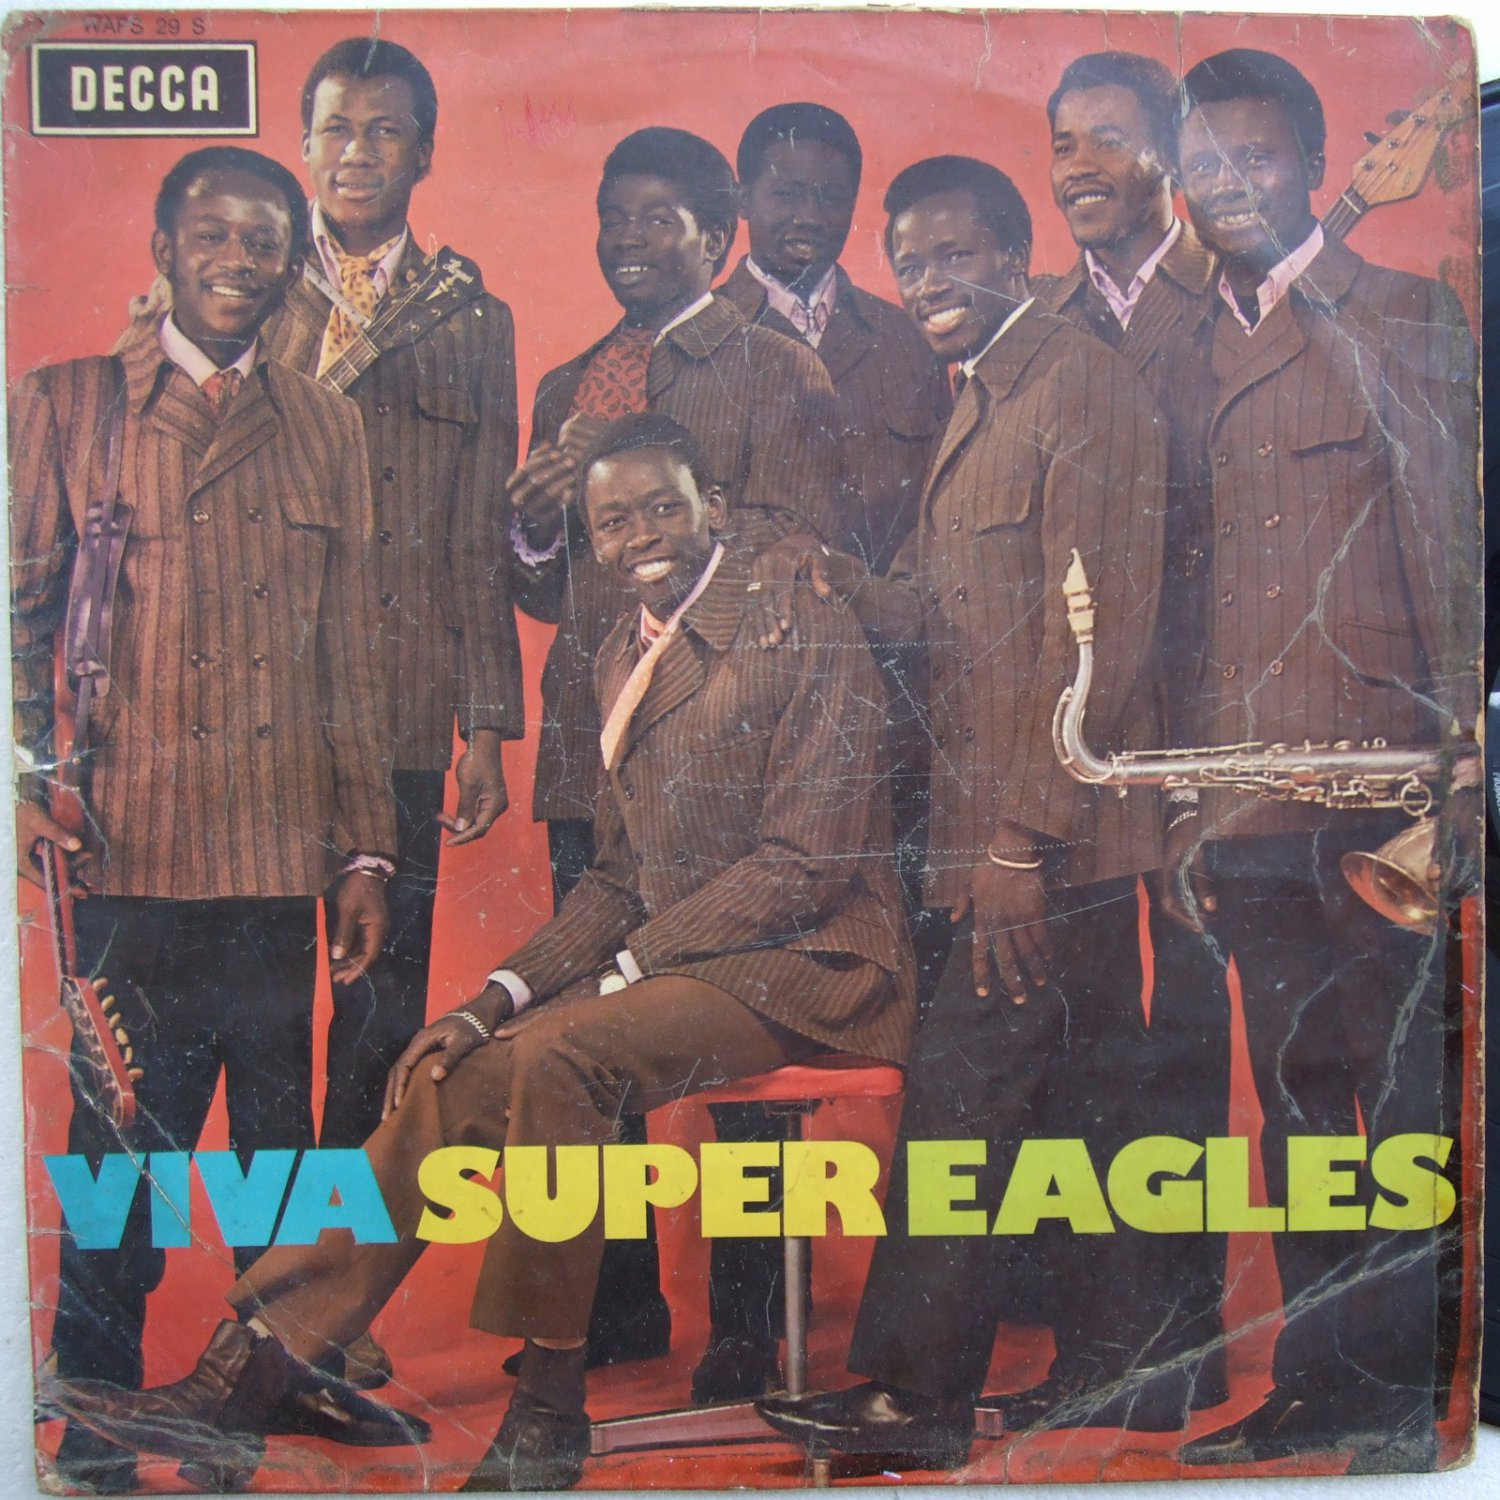 SUPER EAGLES viva super eagles AFRO PSYCH SOUL LATIN LP � mp3 listen